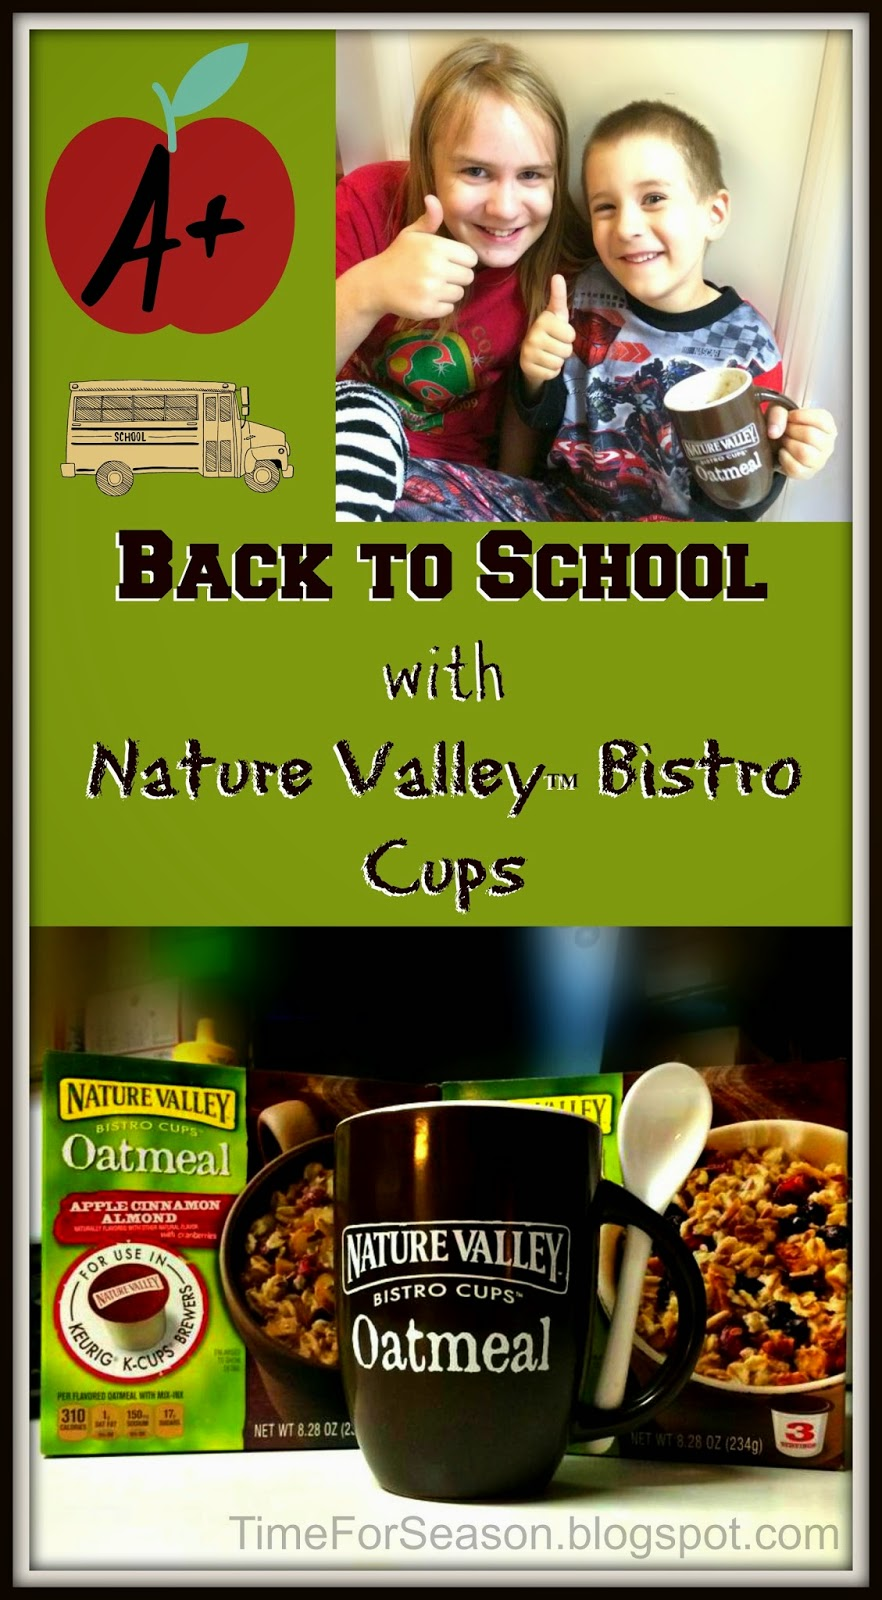 http://timeforseason.blogspot.com/2014/08/back-to-school-with-nature-valley.html